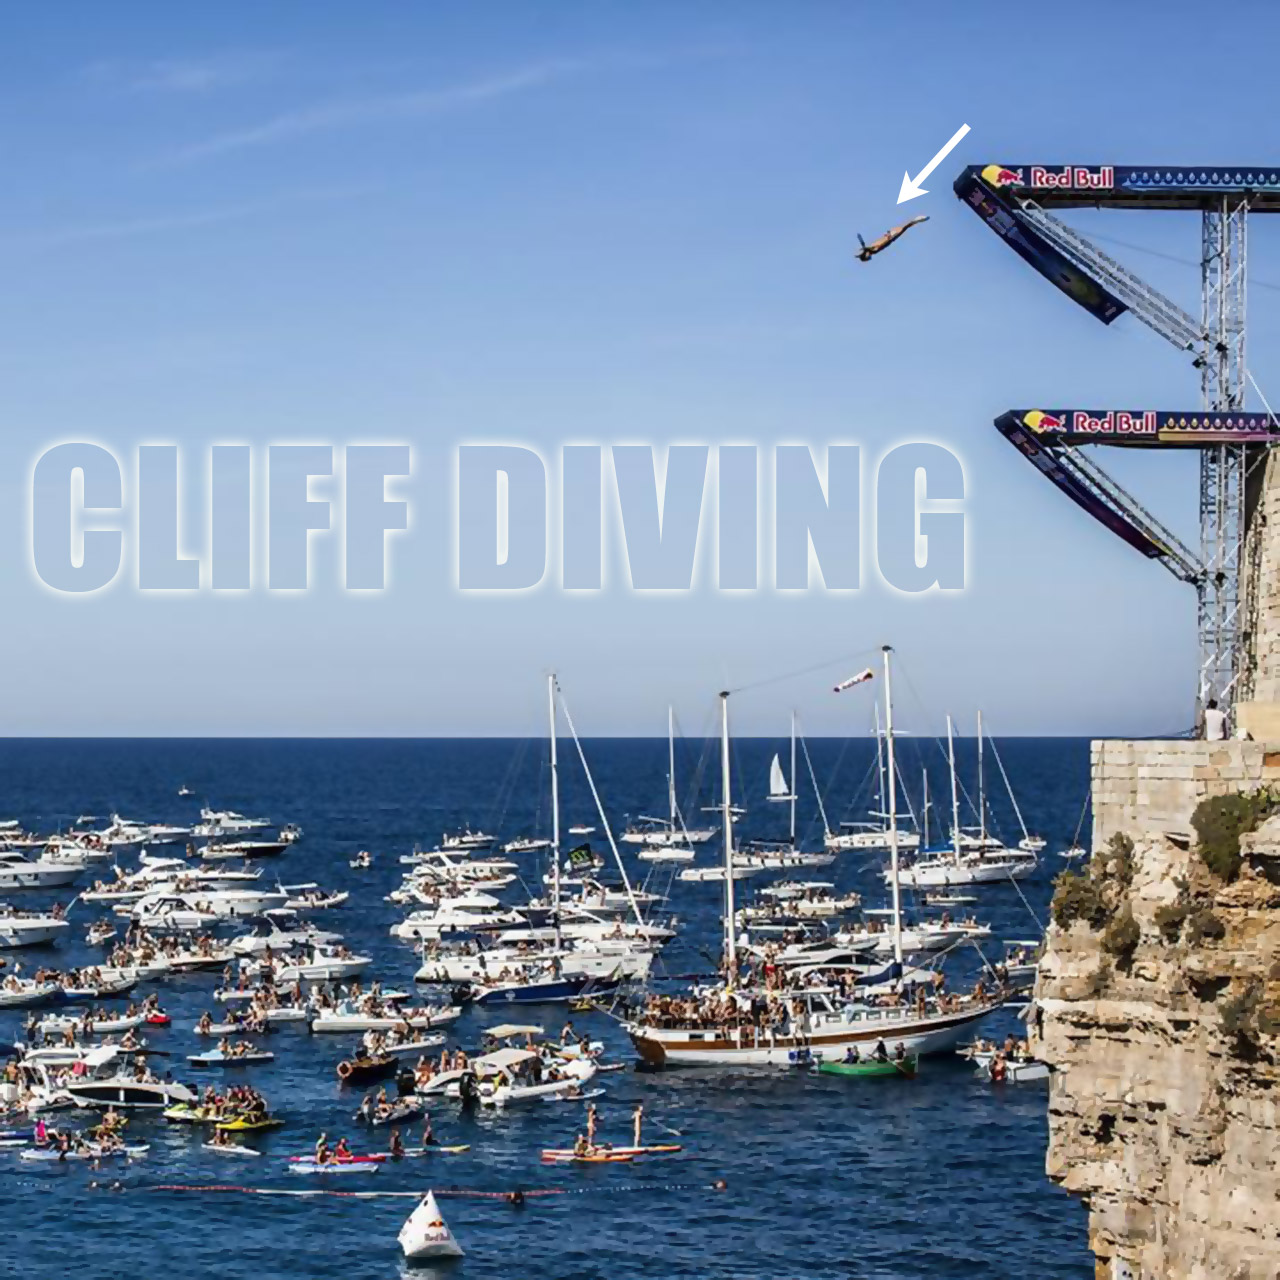 Red Bull Cliff Diving World Series in Italy